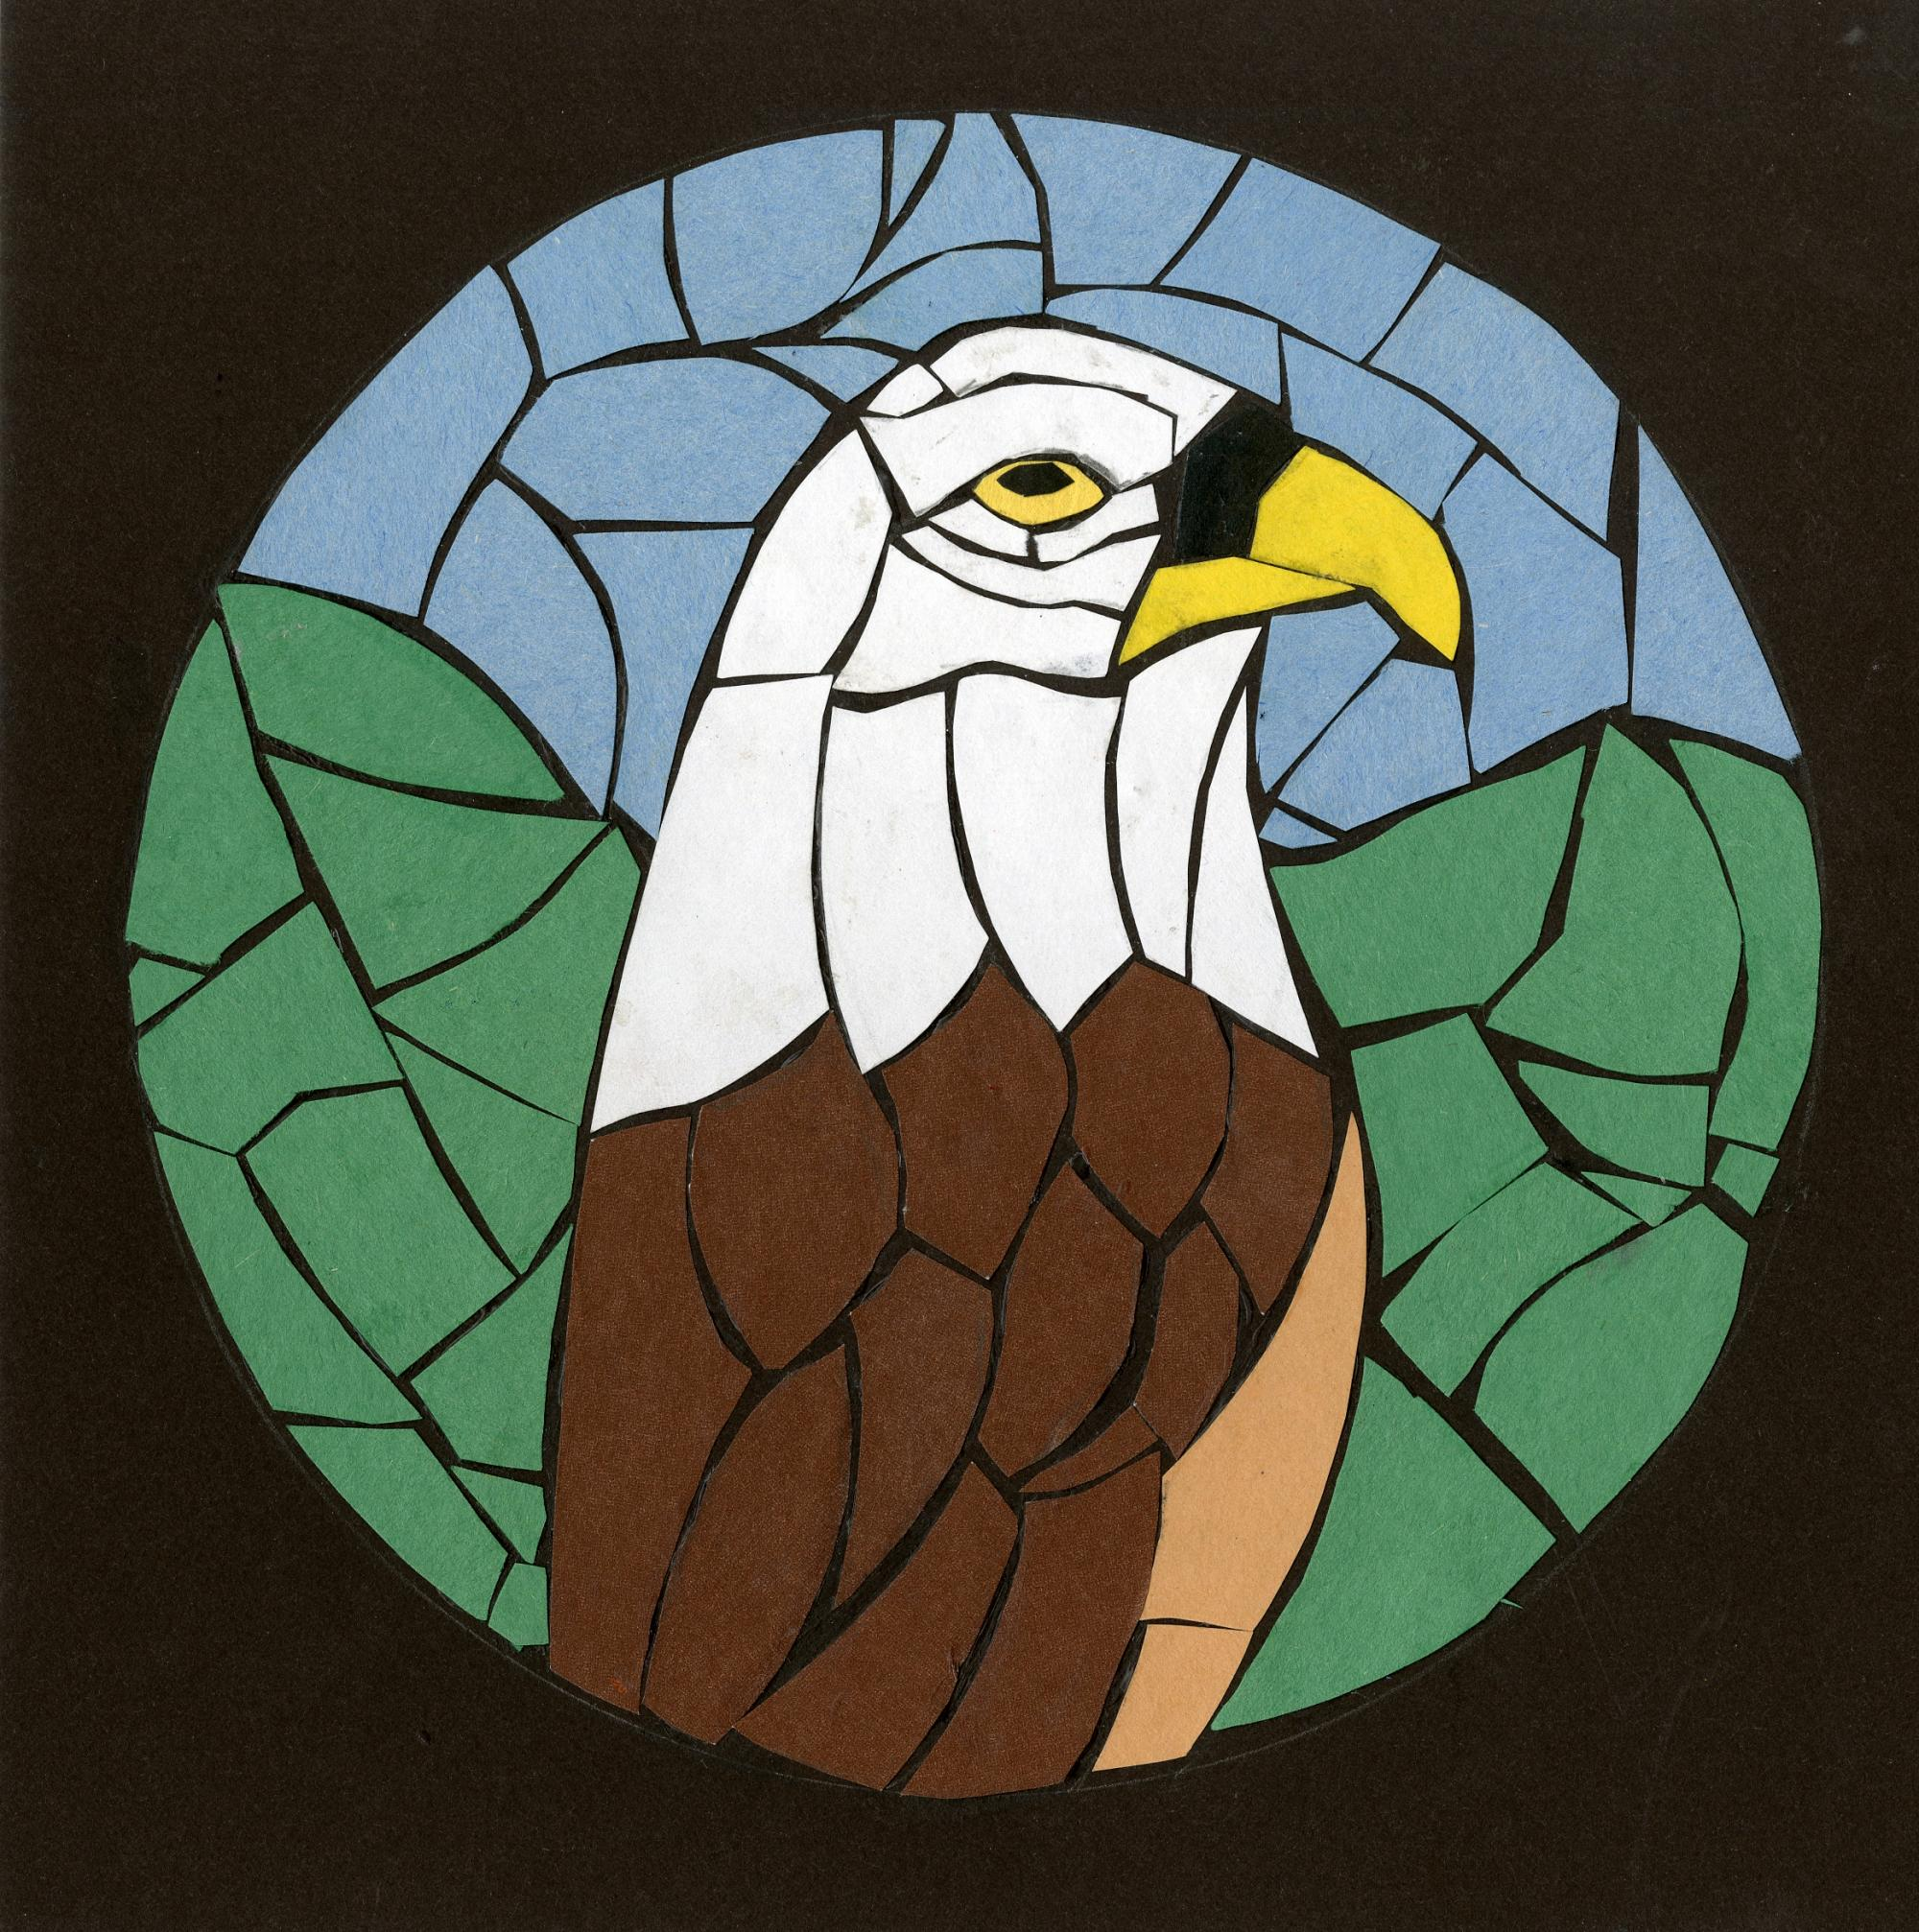 """Eagle"" by James Jay (14), Meridianville, AL (c) 2014 River of Words"